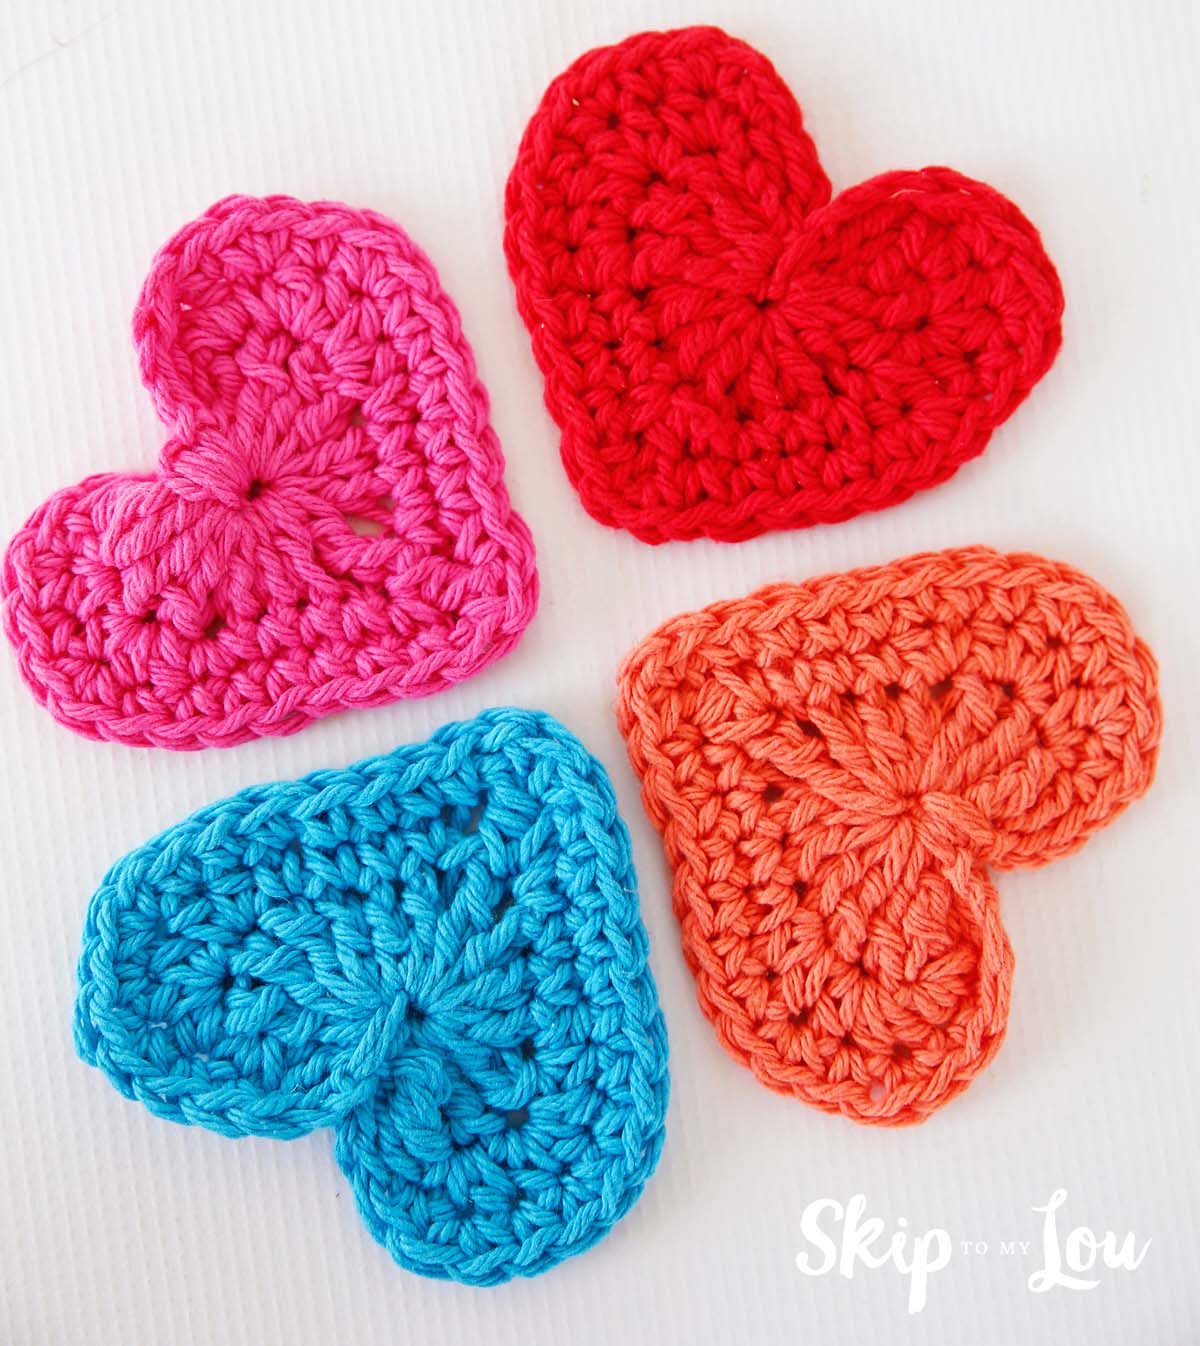 10 Crochet Heart Patterns for Valentine's Day | 1346x1200